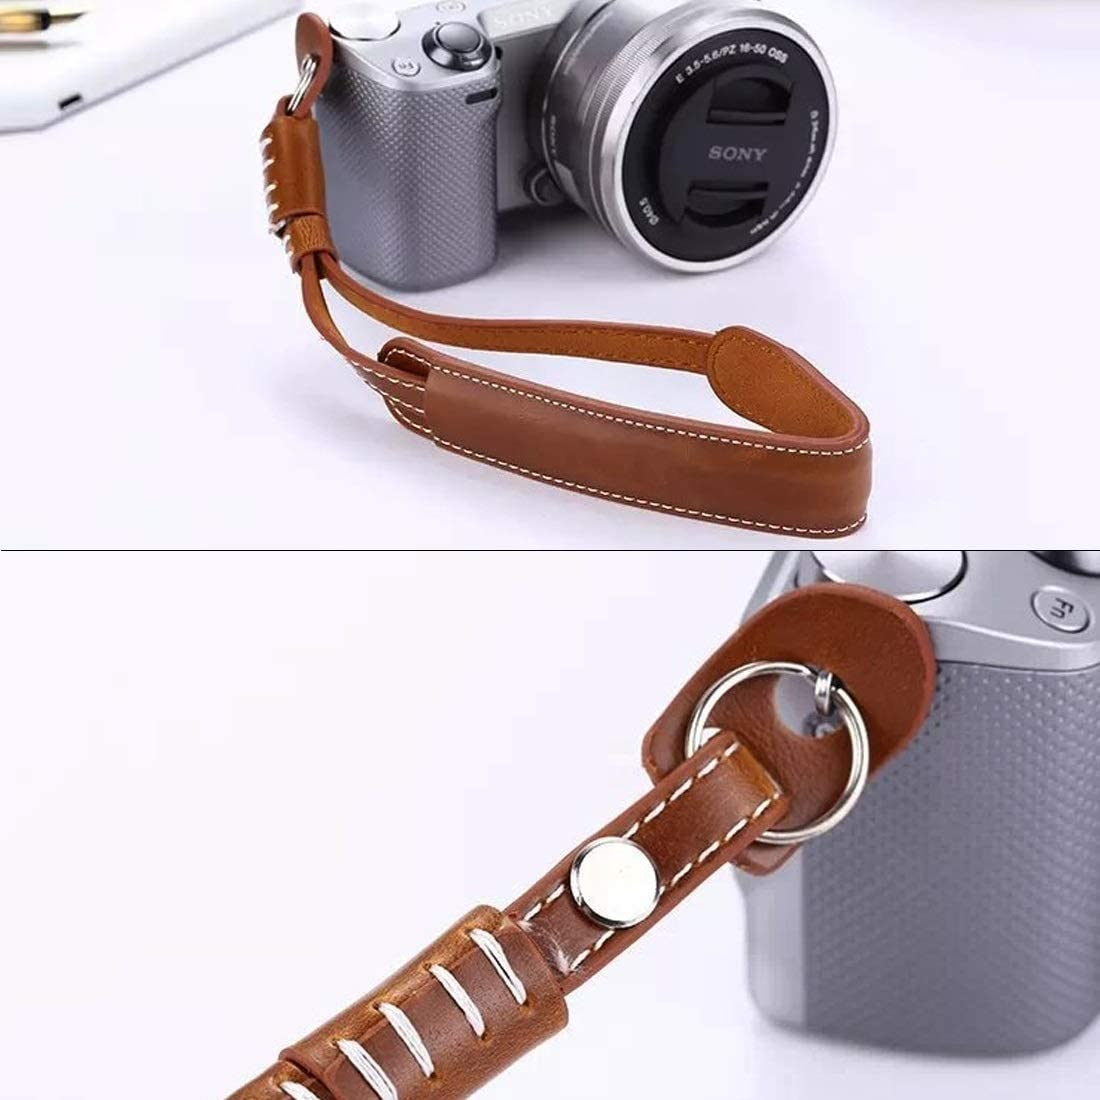 Black Color : Brown Camera Strap Caofeng Camera Wrist Strap Safety Wrist Strap Grip PU Leather Hand Strap for SLR//DSLR Cameras